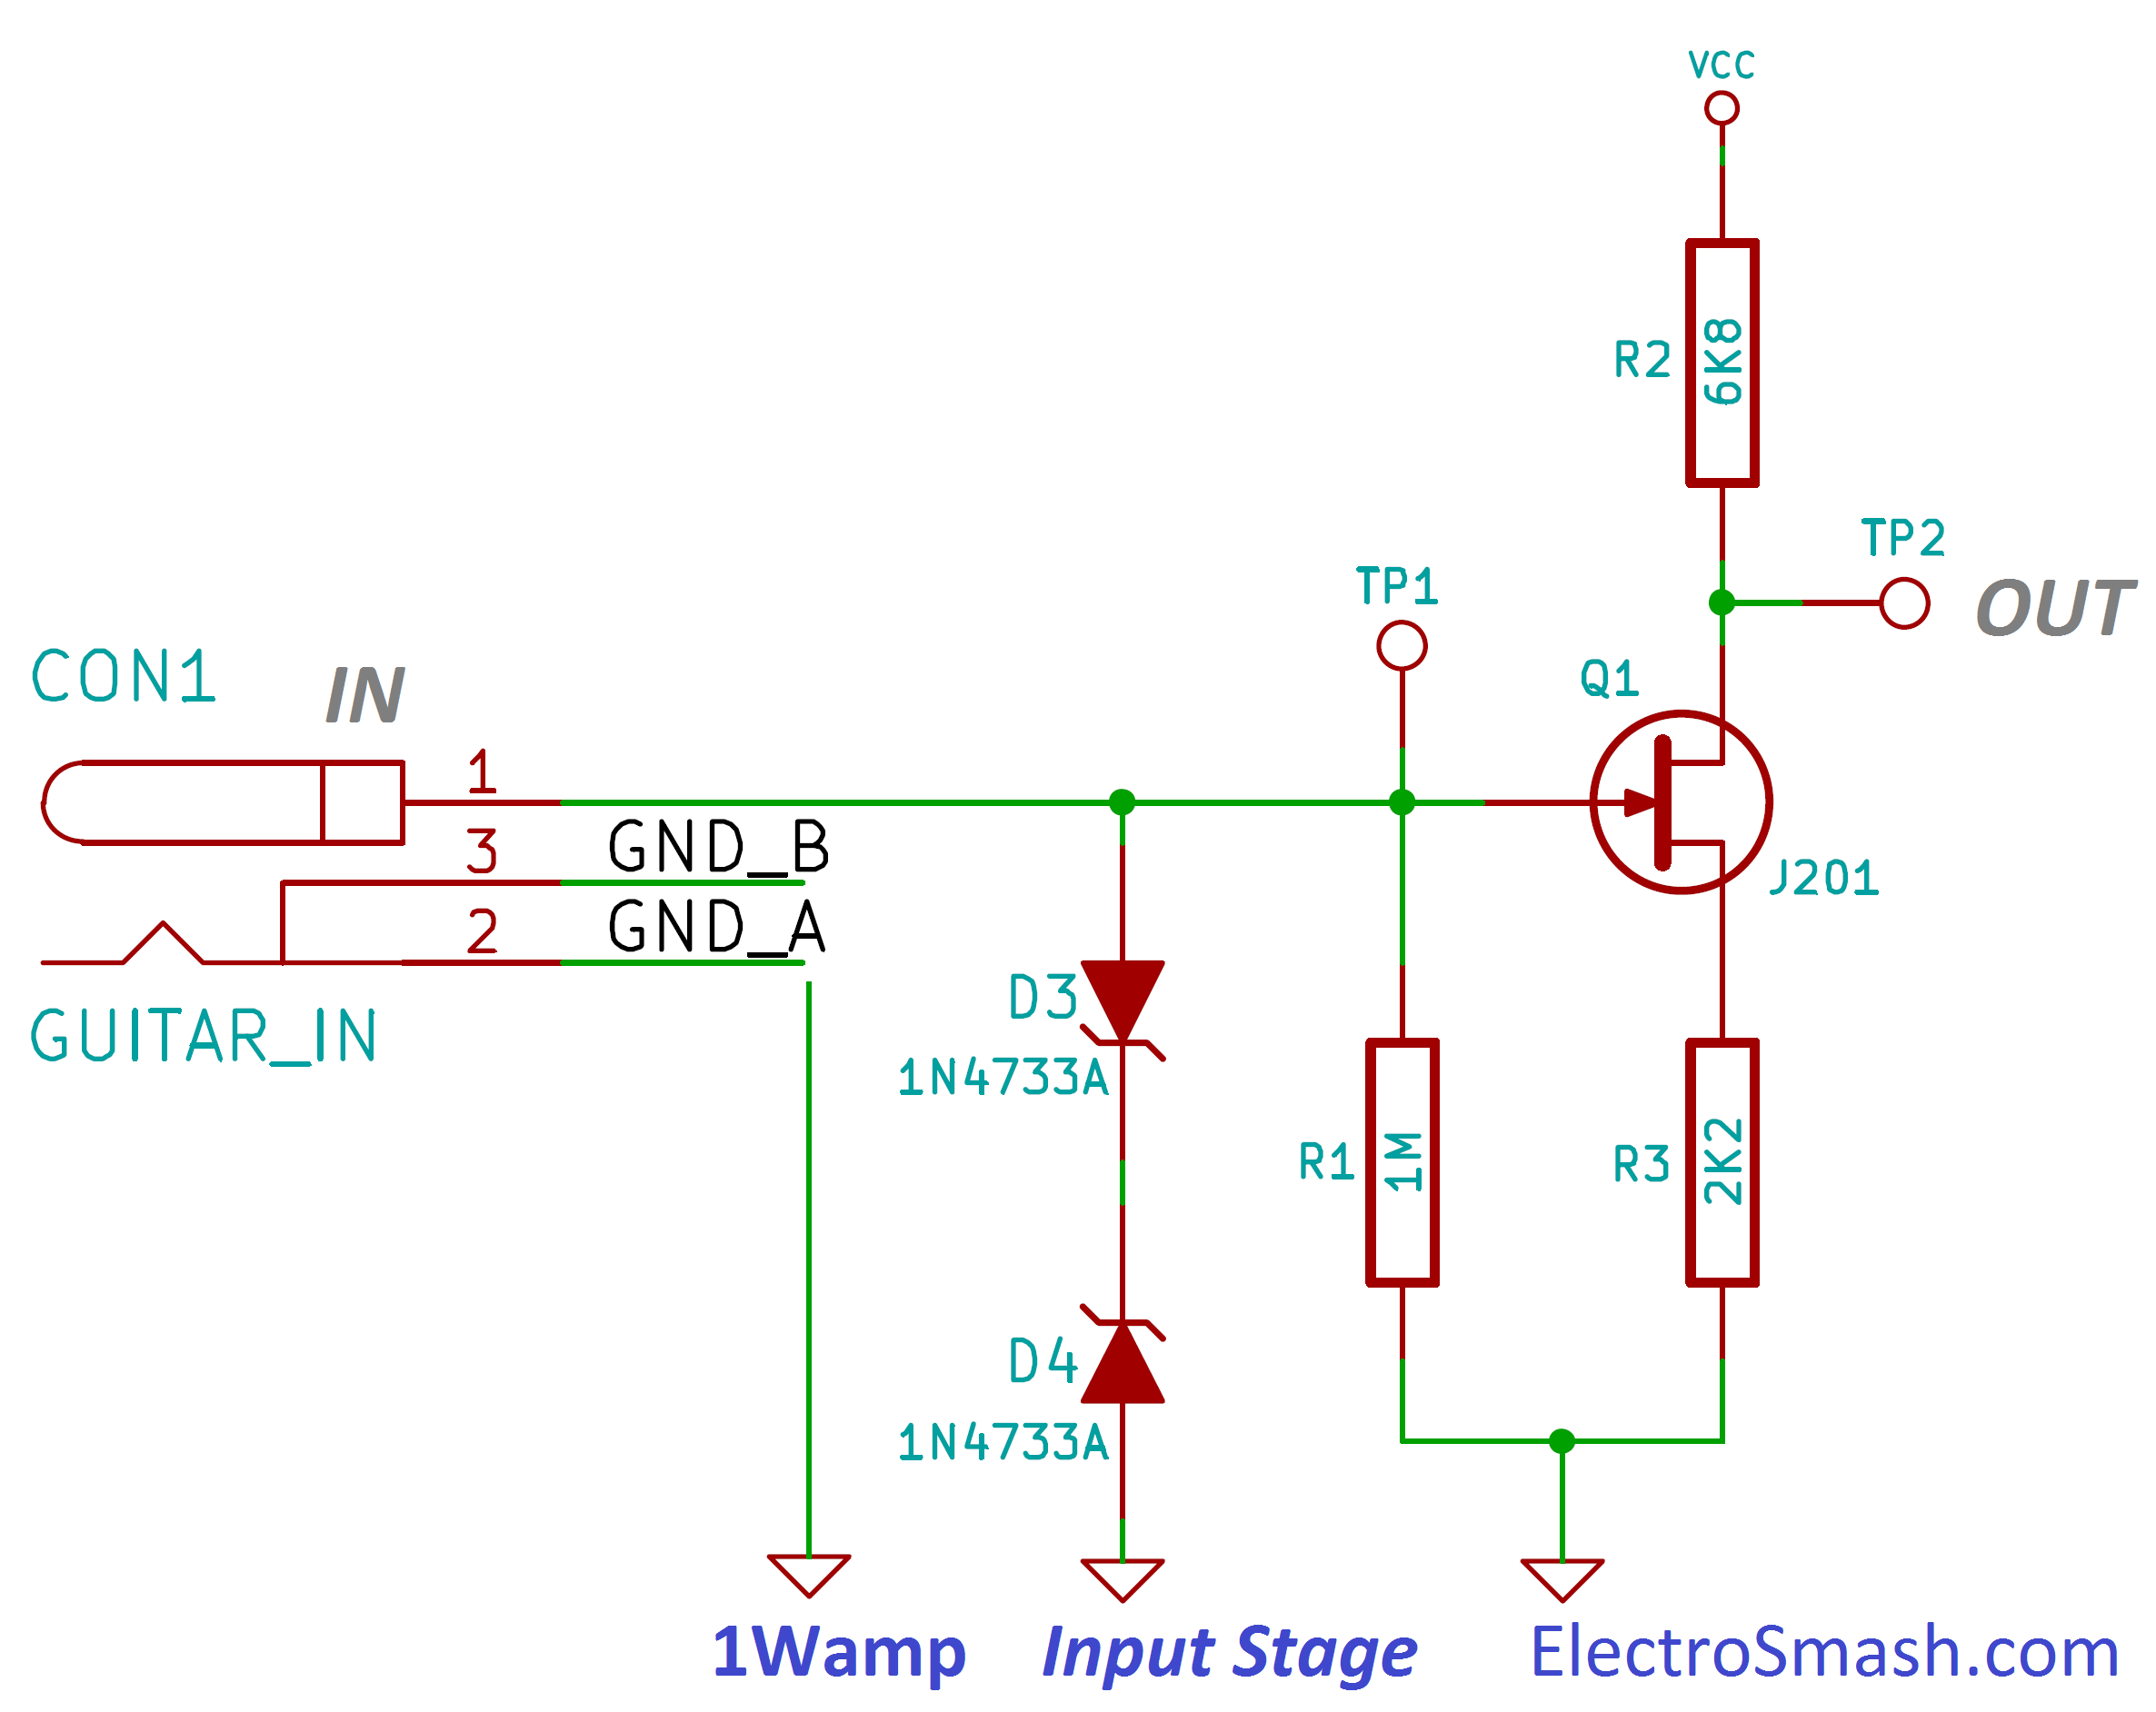 Electrosmash 1wamp Electroc Guitar Amplifier Lowpower With Digital Volume Control Amp Circuit Diagram Jfet Input Stage